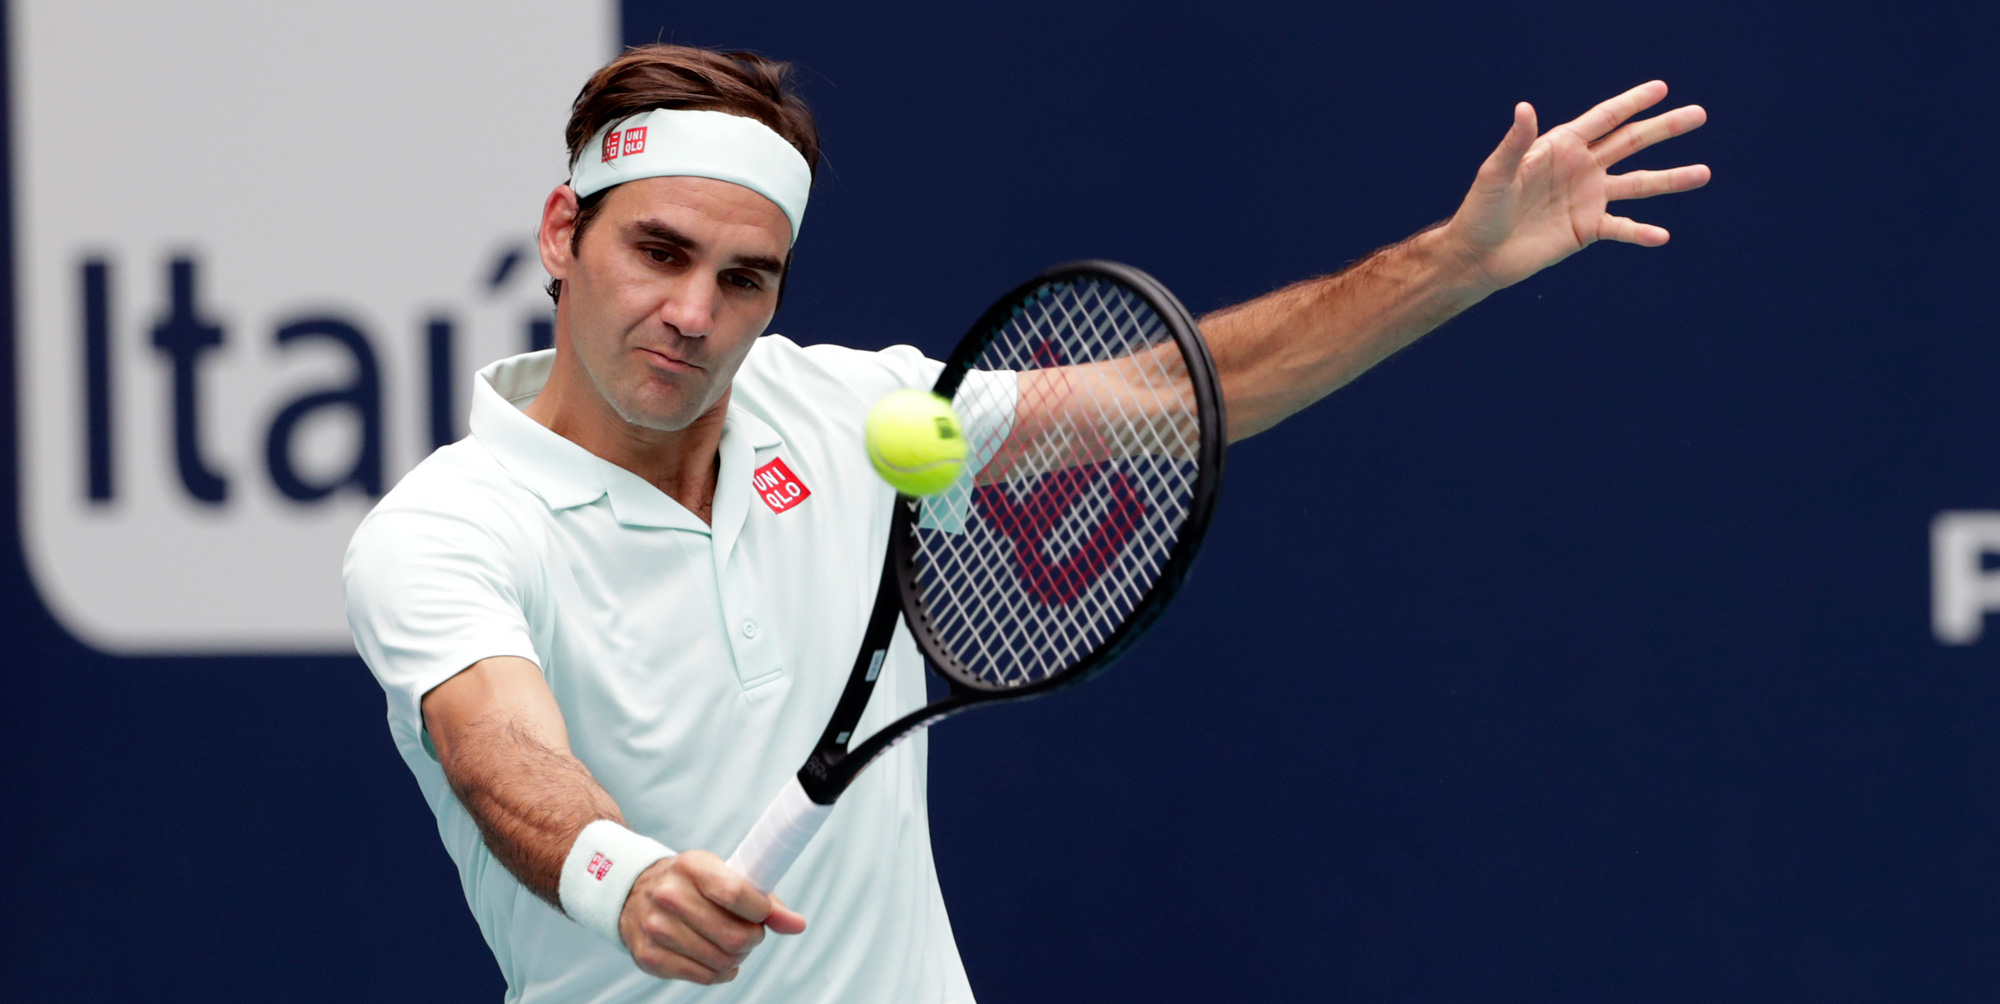 Roger Federer must be congratulated for lifting the 101st title of his remarkable career.